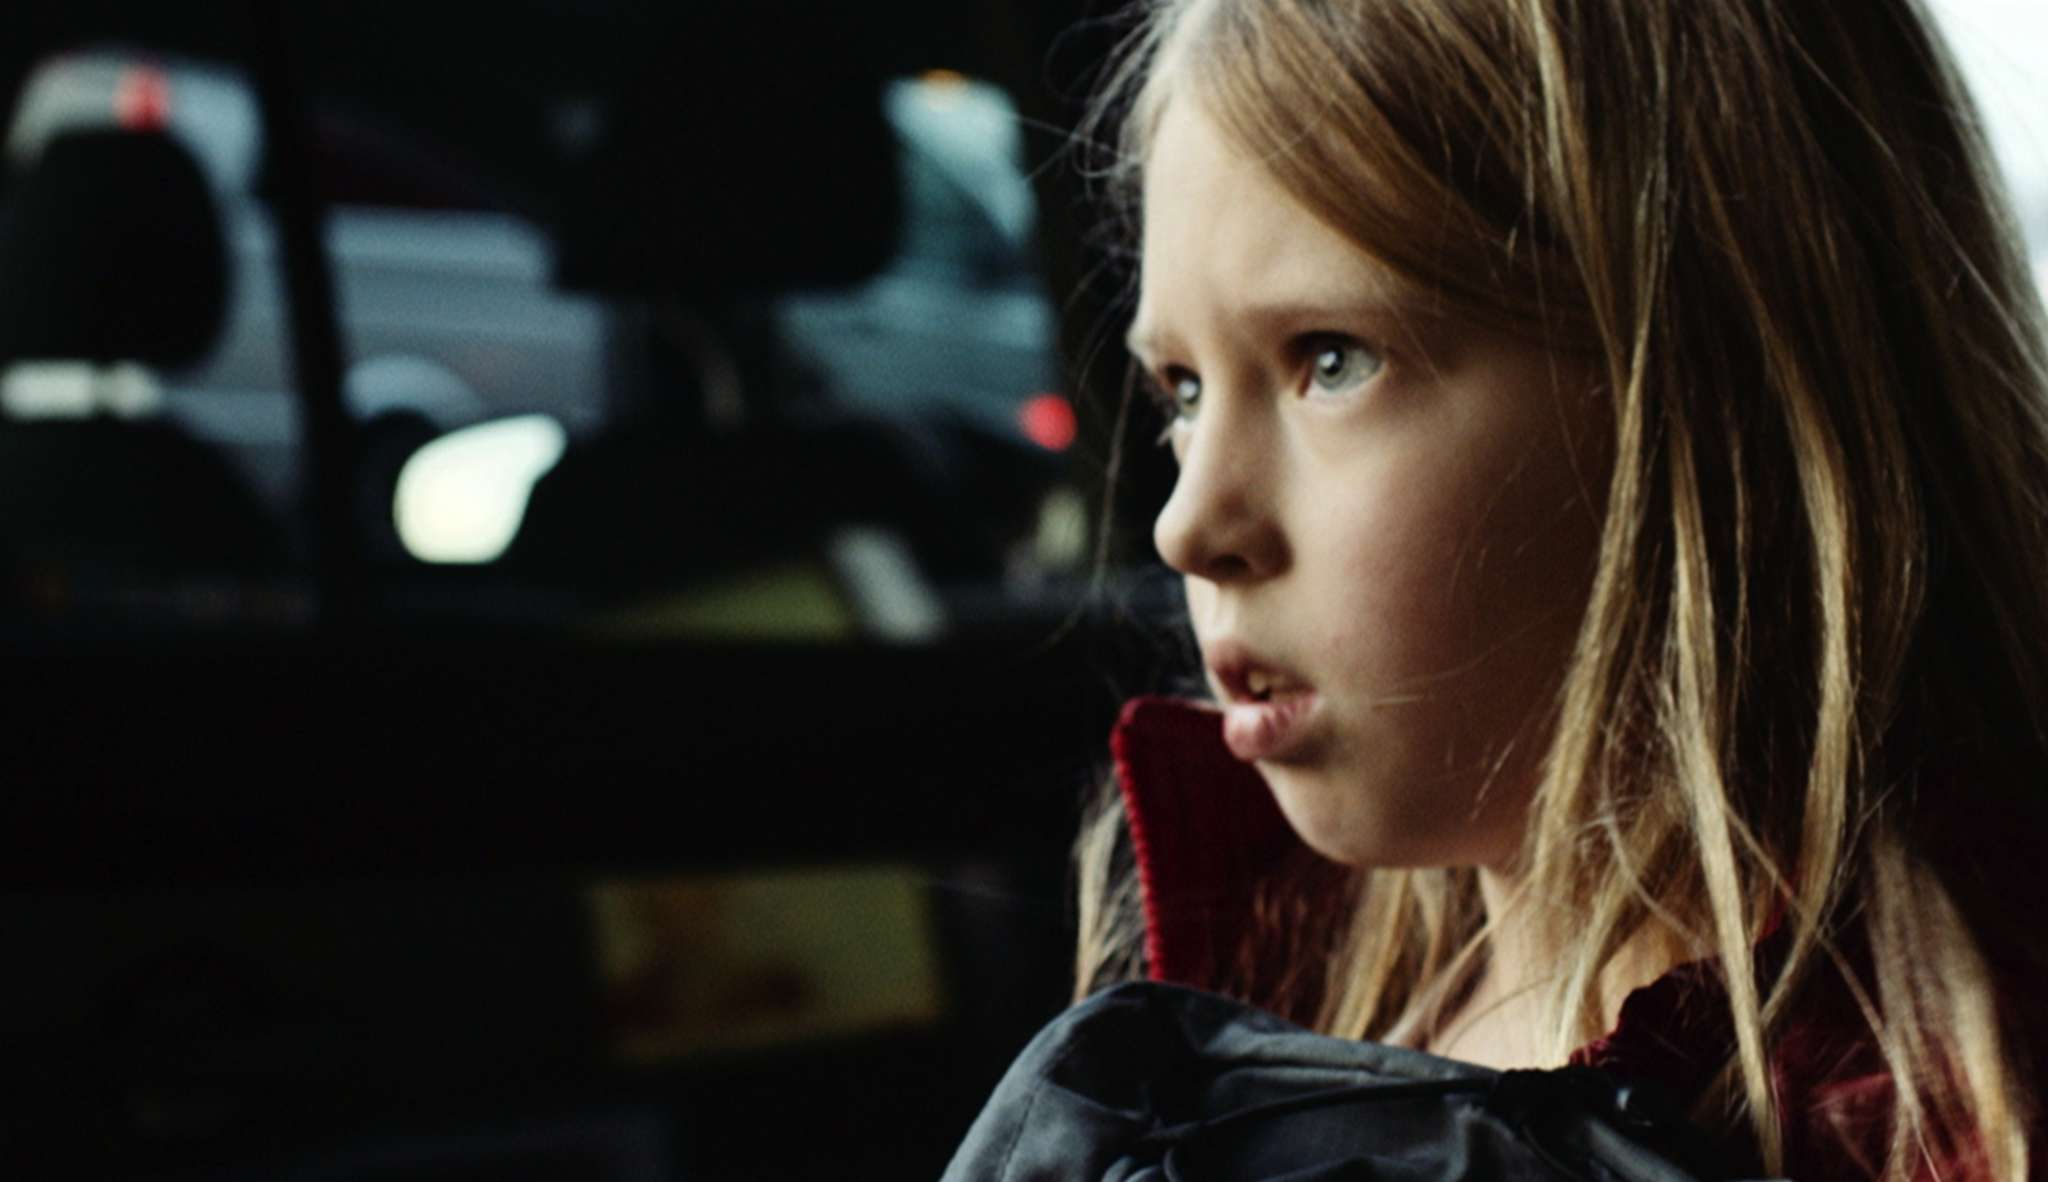 """´Everything Will Be Okay"" - the Oscar- nominated German film about a divorced father who abducts his daughter, Lea (Julia Pointner) - is a half-hour drama that is shattering in real and unnerving ways."